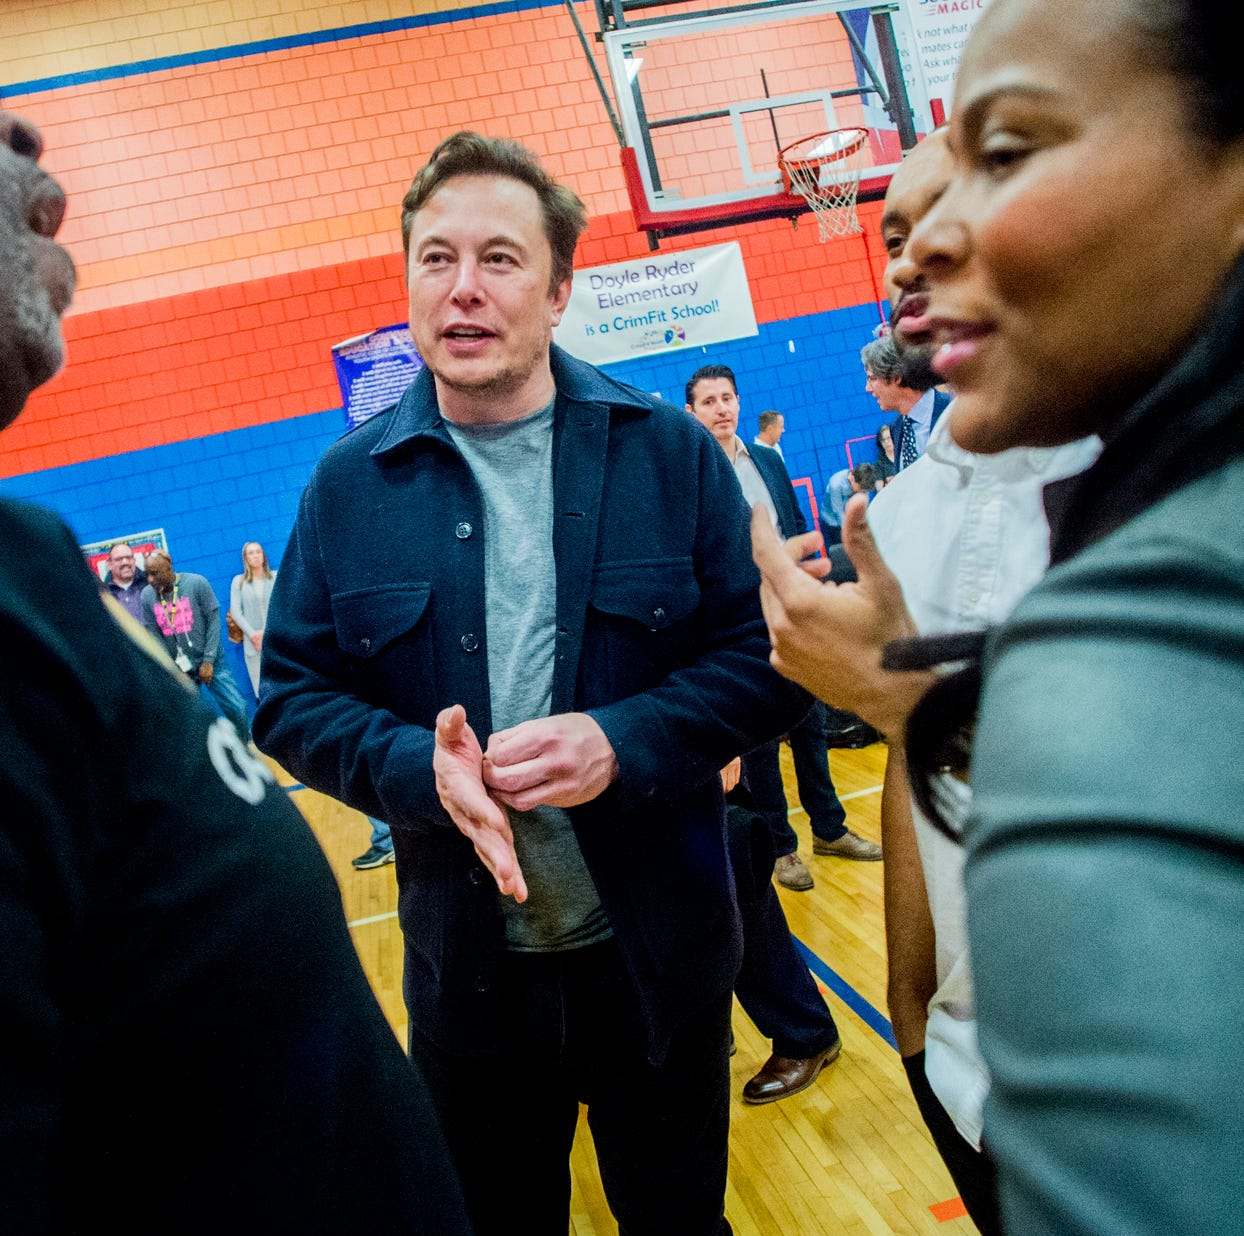 Tesla CEO Elon Musk surprises Flint students with visit, laptops